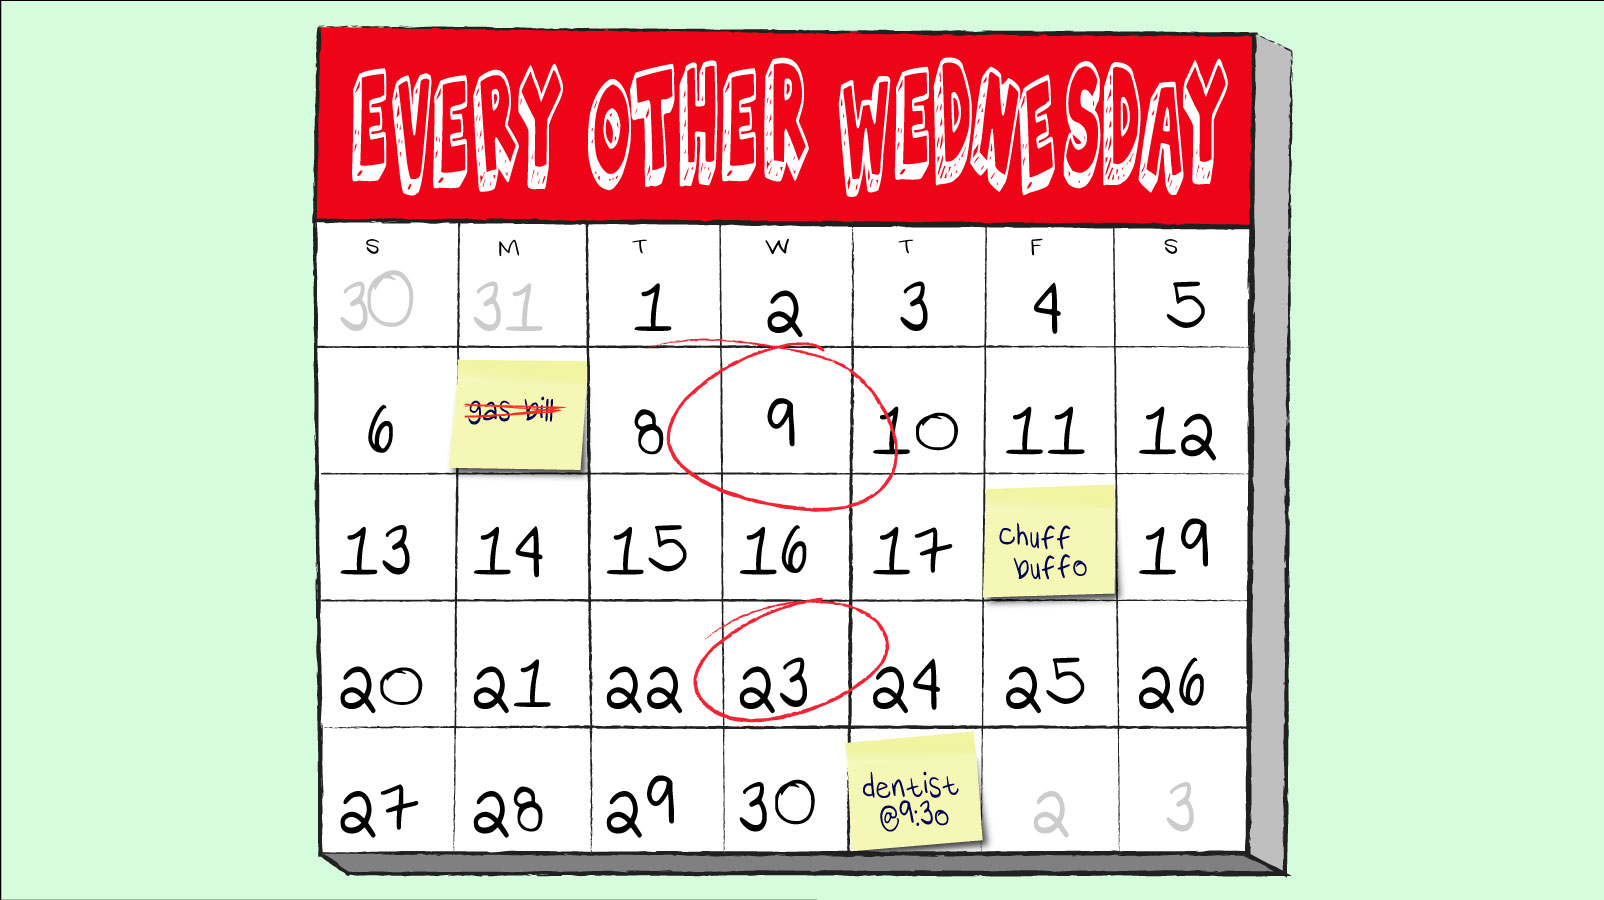 every other wednesday 23